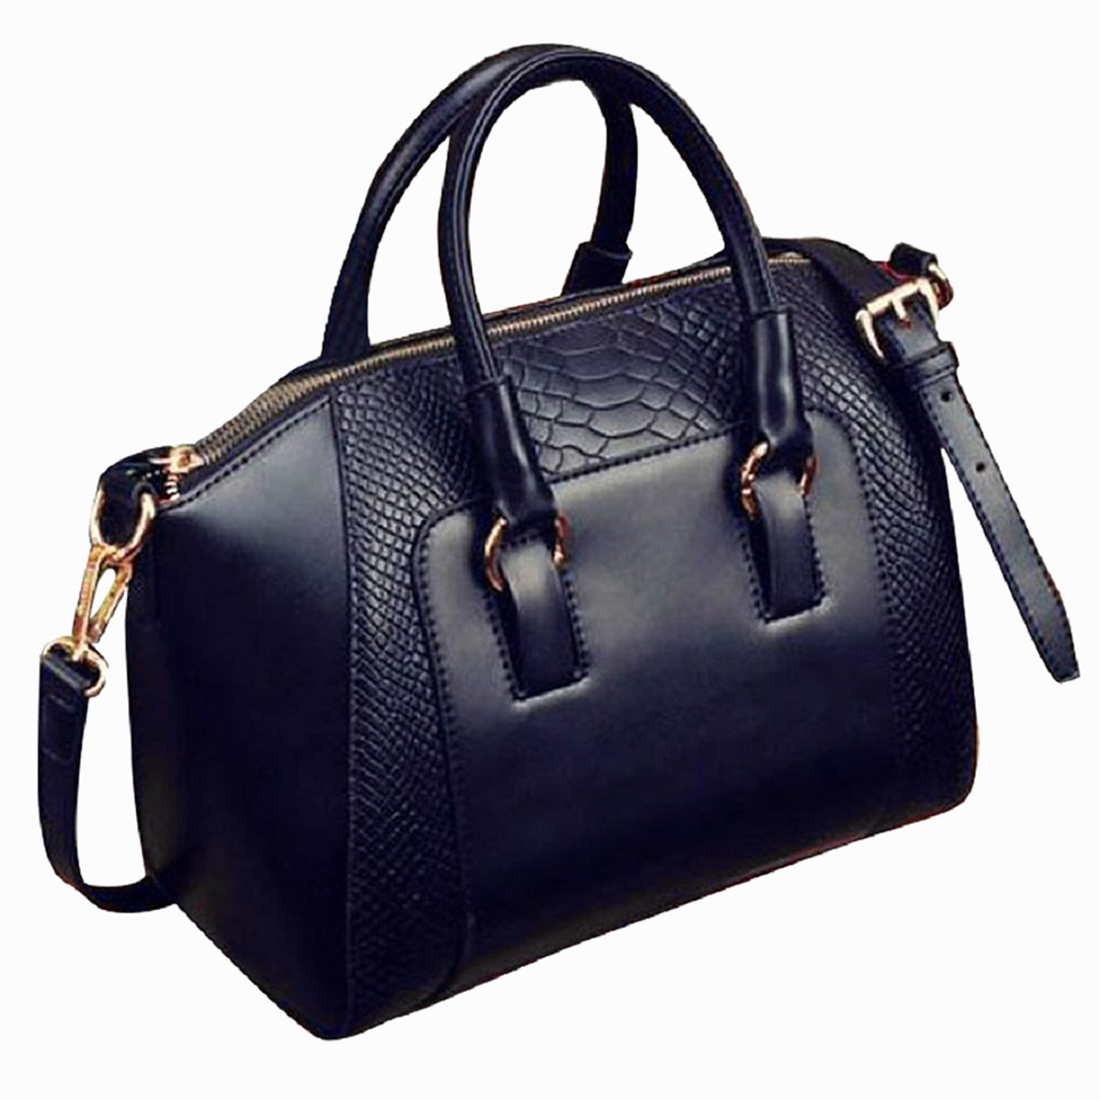 Women's Shoulder Bag In Imitation Leather Satchel Cross Body Tote Bag (Black)